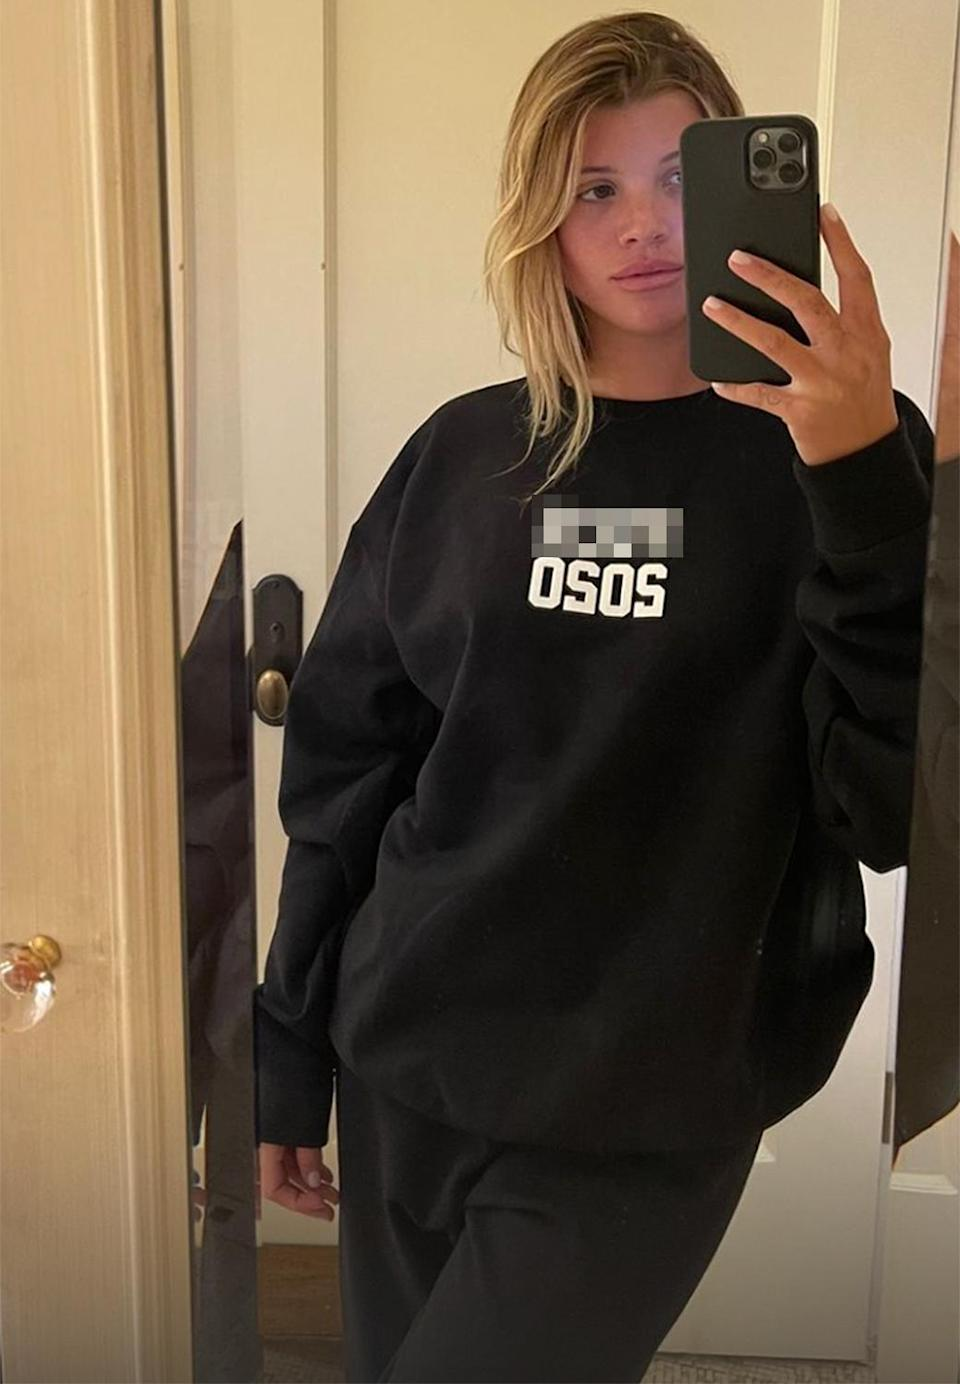 "<p>Sofia Richie chose a black sweatsuit with ""F--- 2020"" across the front for her New Year's Eve ensemble, sharing her look on her <a href=""https://www.instagram.com/sofiarichie/"" rel=""nofollow noopener"" target=""_blank"" data-ylk=""slk:Instagram Stories."" class=""link rapid-noclick-resp"">Instagram Stories.</a> </p>"